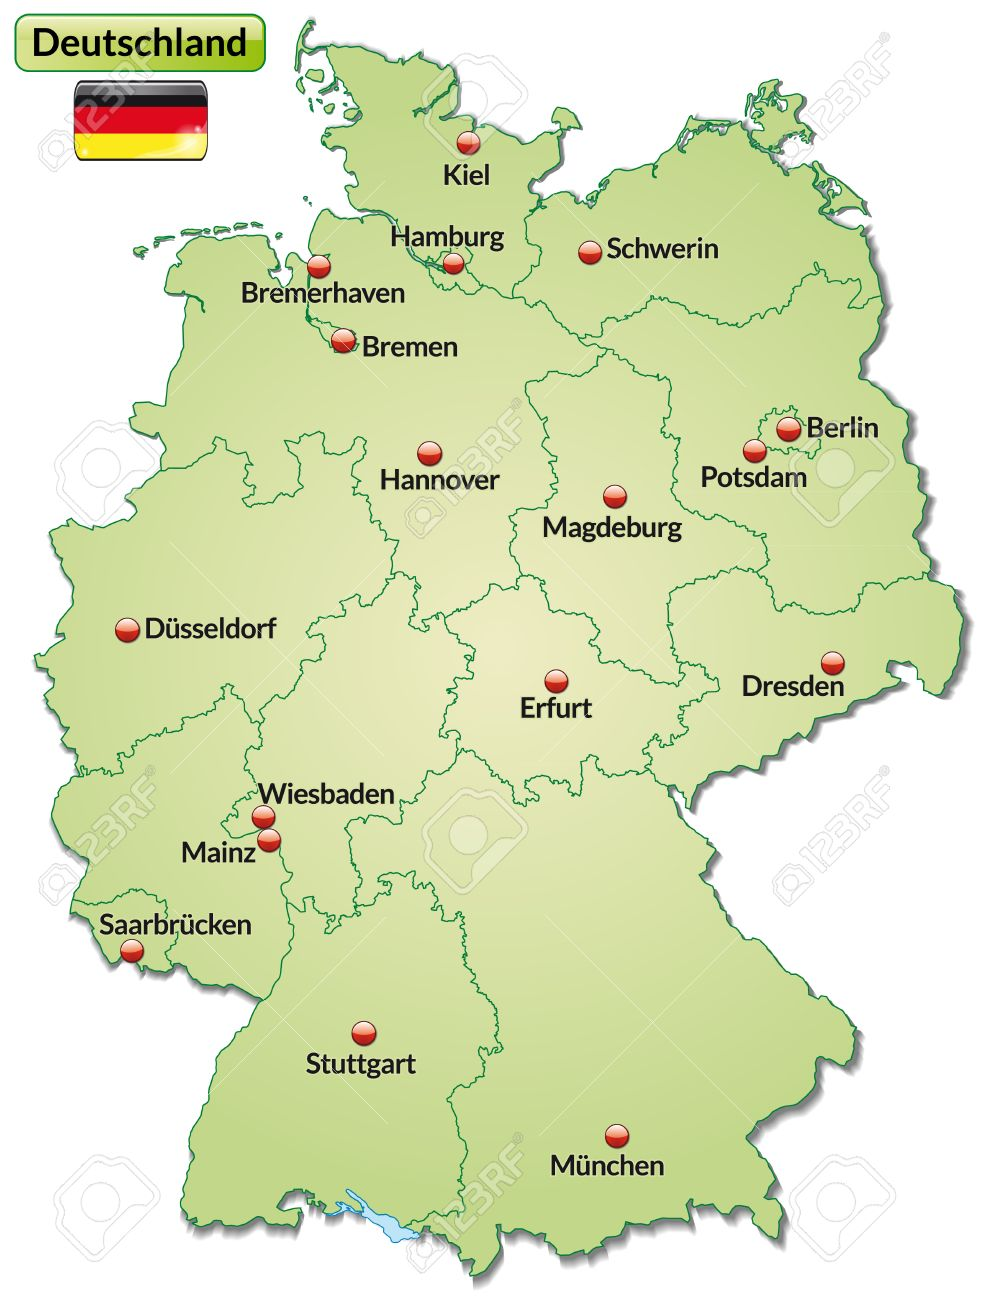 Map Of Germany Major Cities.Map Of Germany With Main Cities In Pastel Green